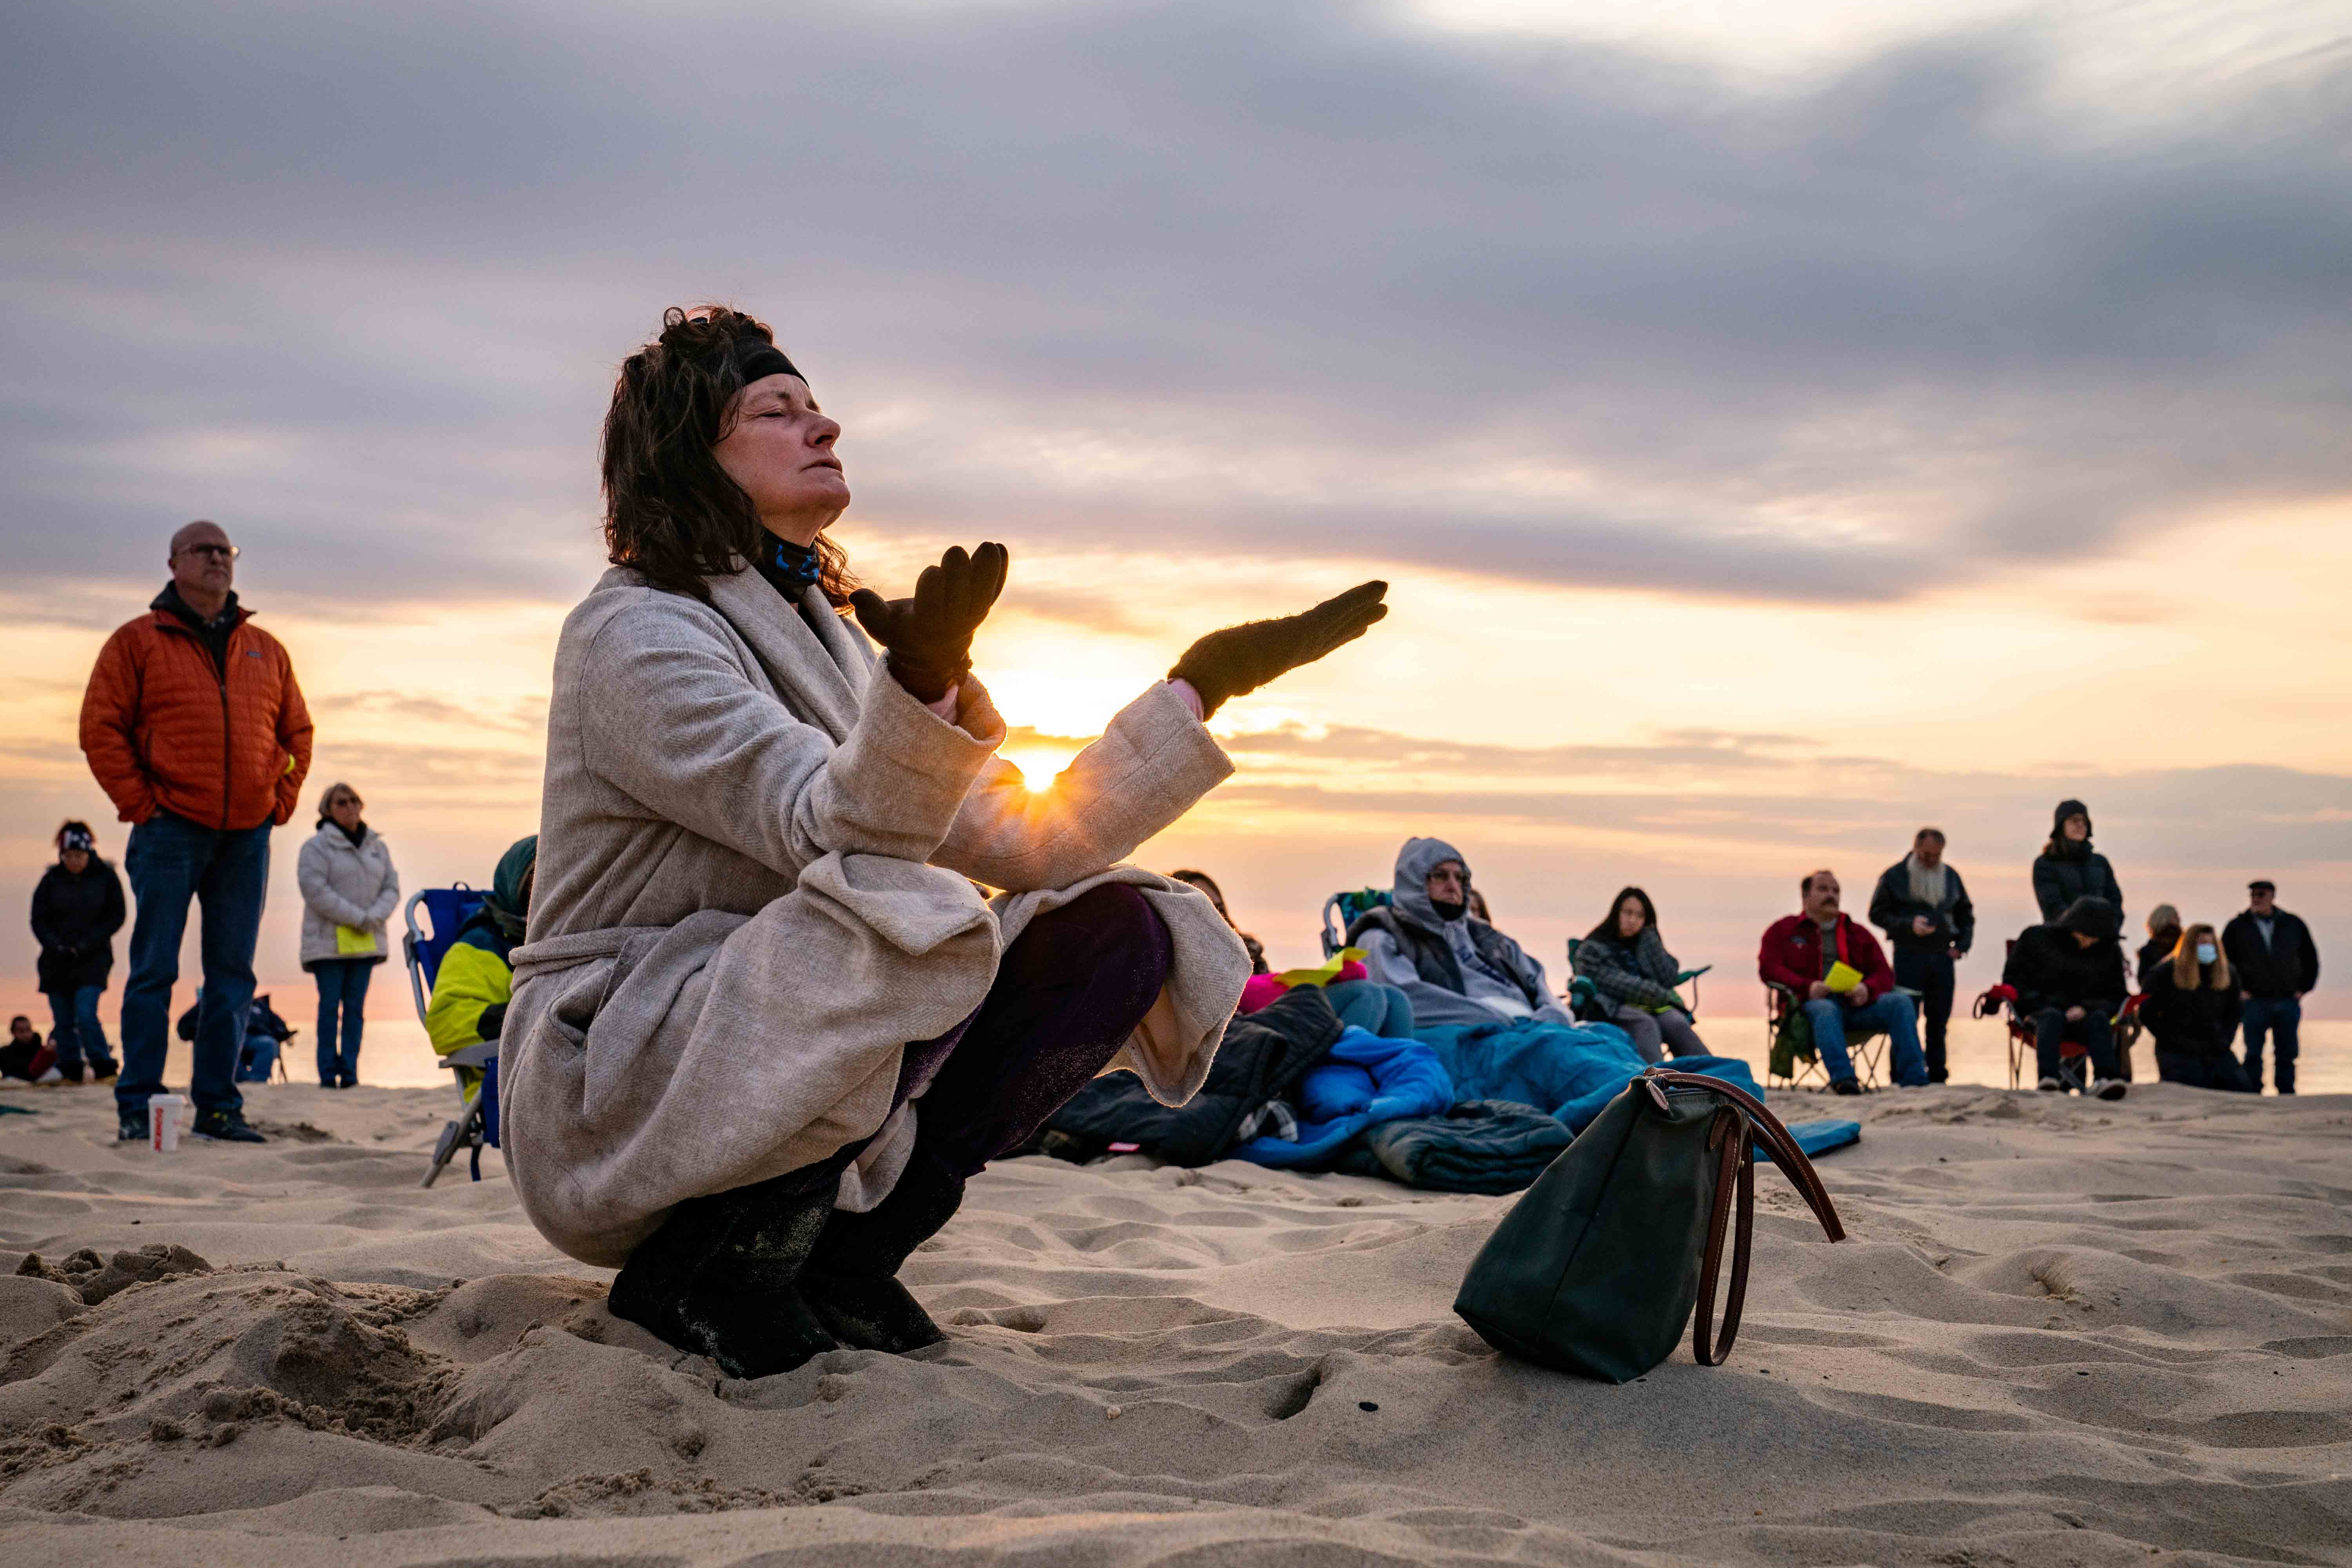 Parishioners gather on a beach for an Easter Sunday service at sunrise hosted by Hope Community Church of Manasquan, Sunday, April 4, 2021, in Manasquan, N.J.